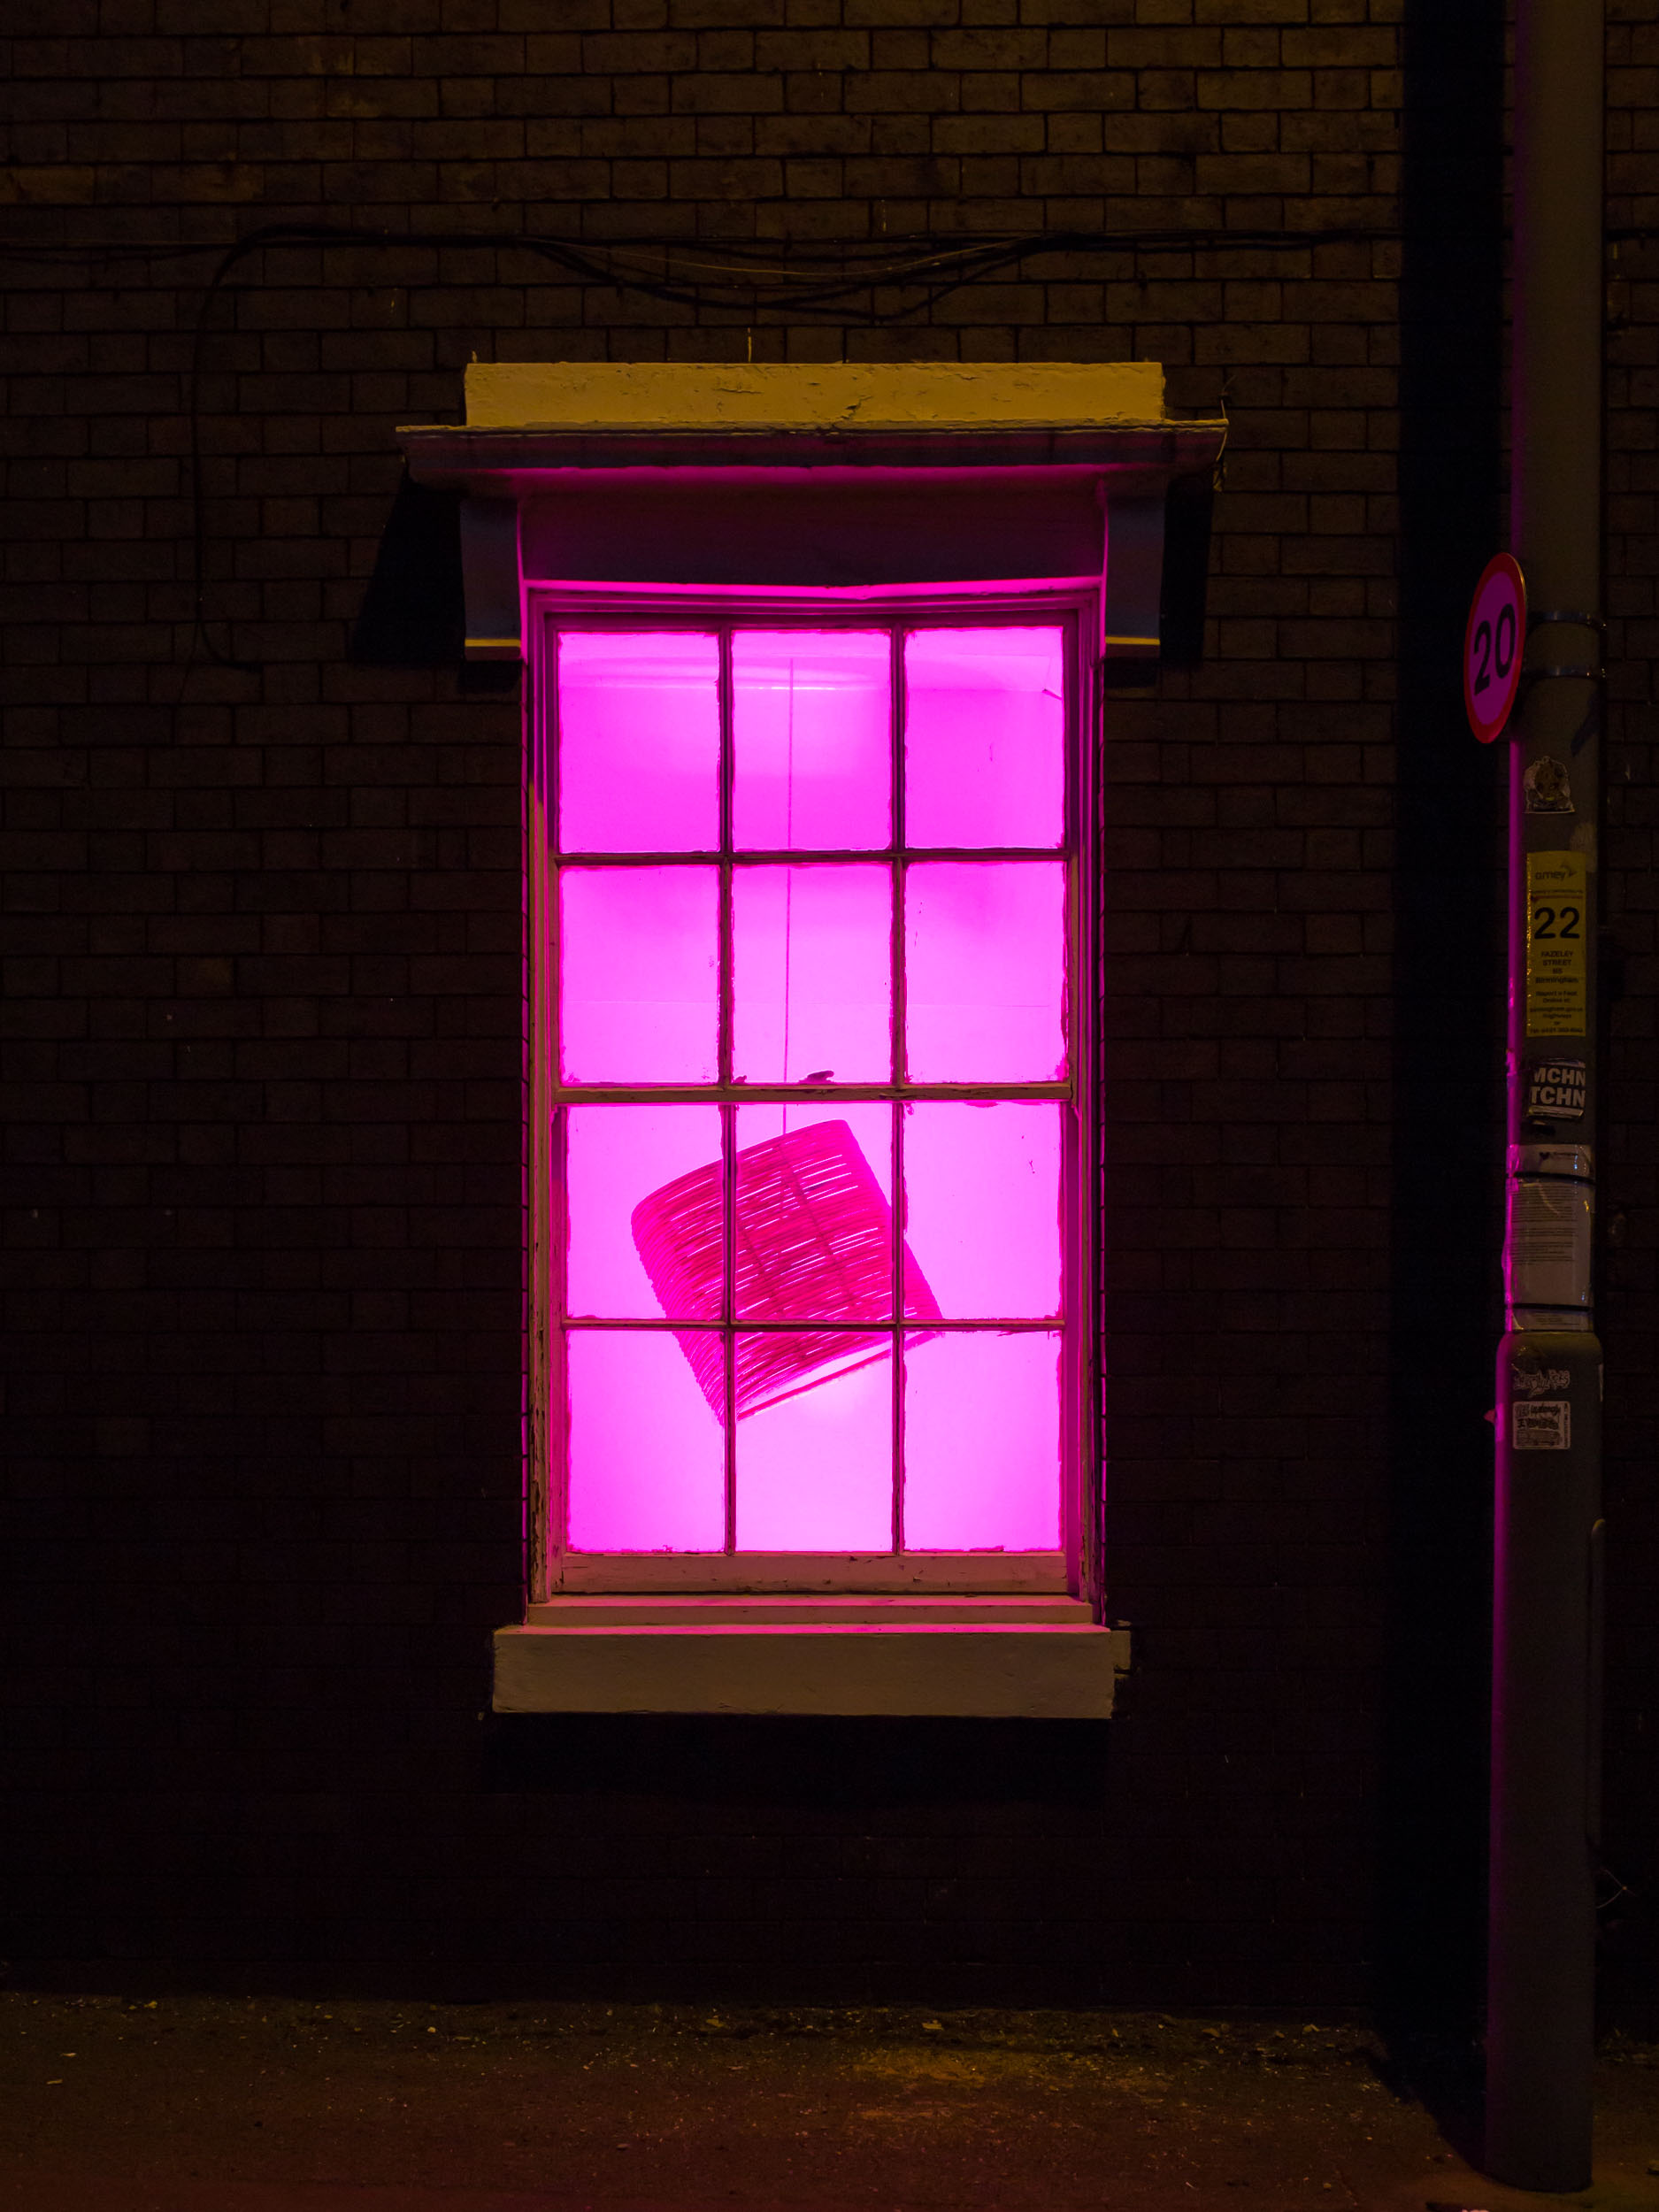 A lantana stool hanging in a pink lit window